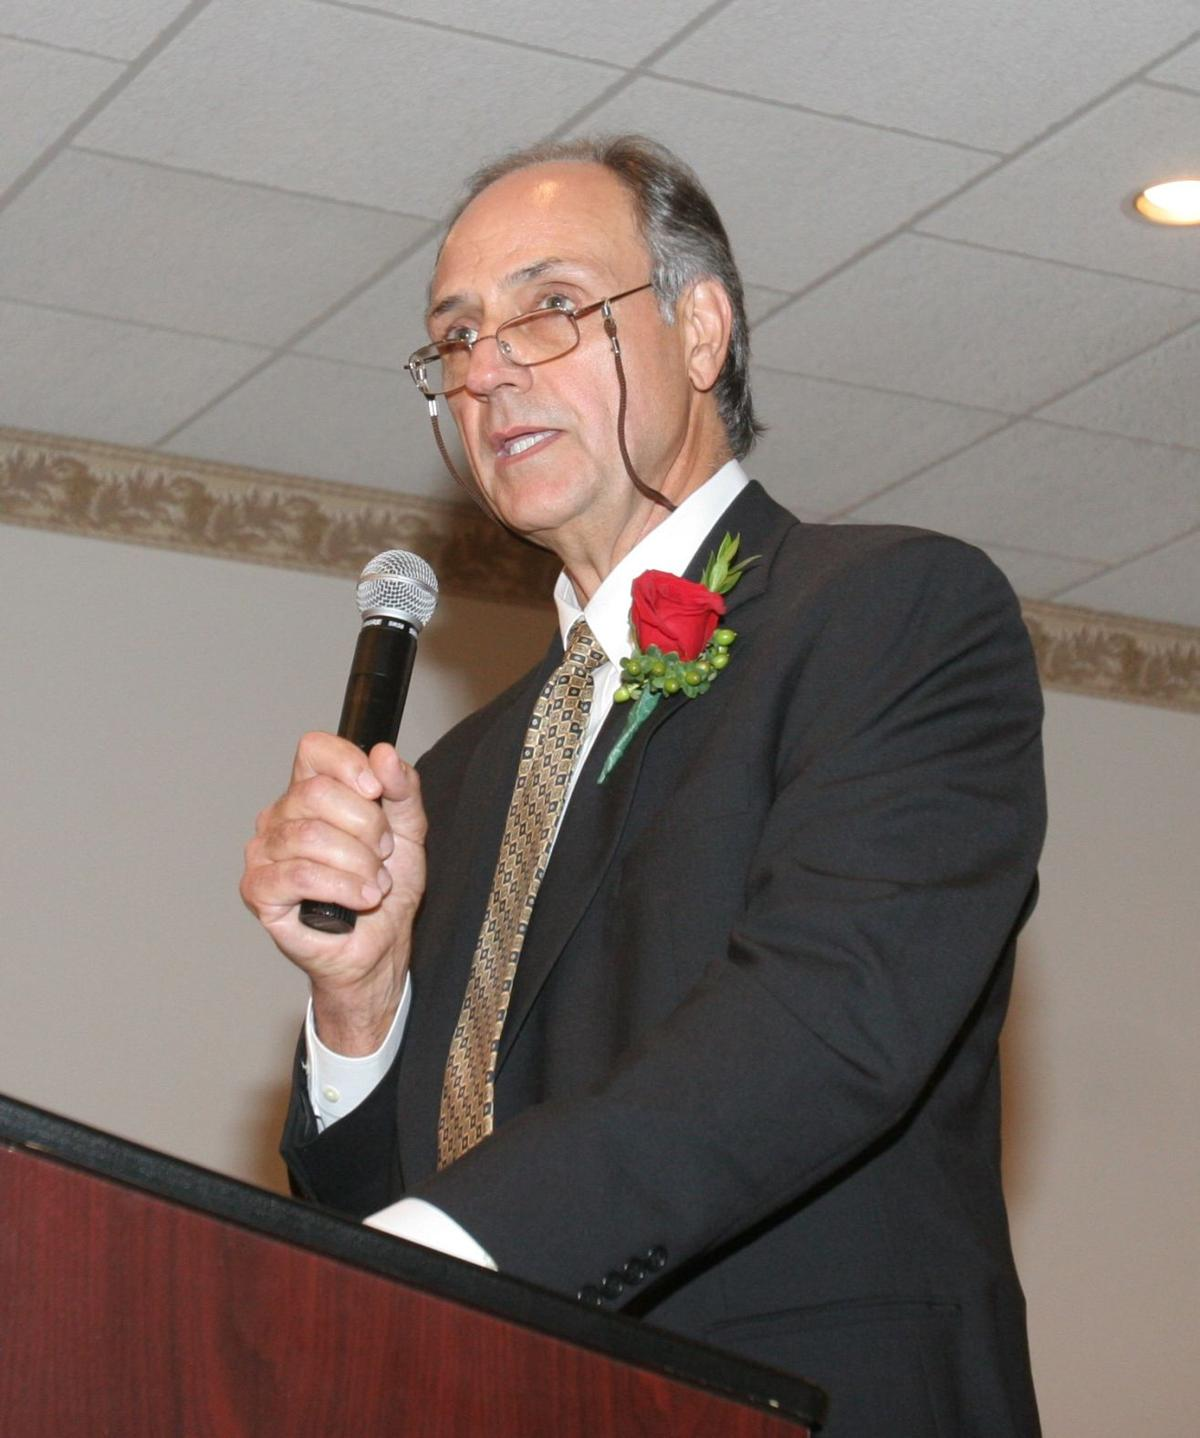 Ron Sepic 2009.jpg